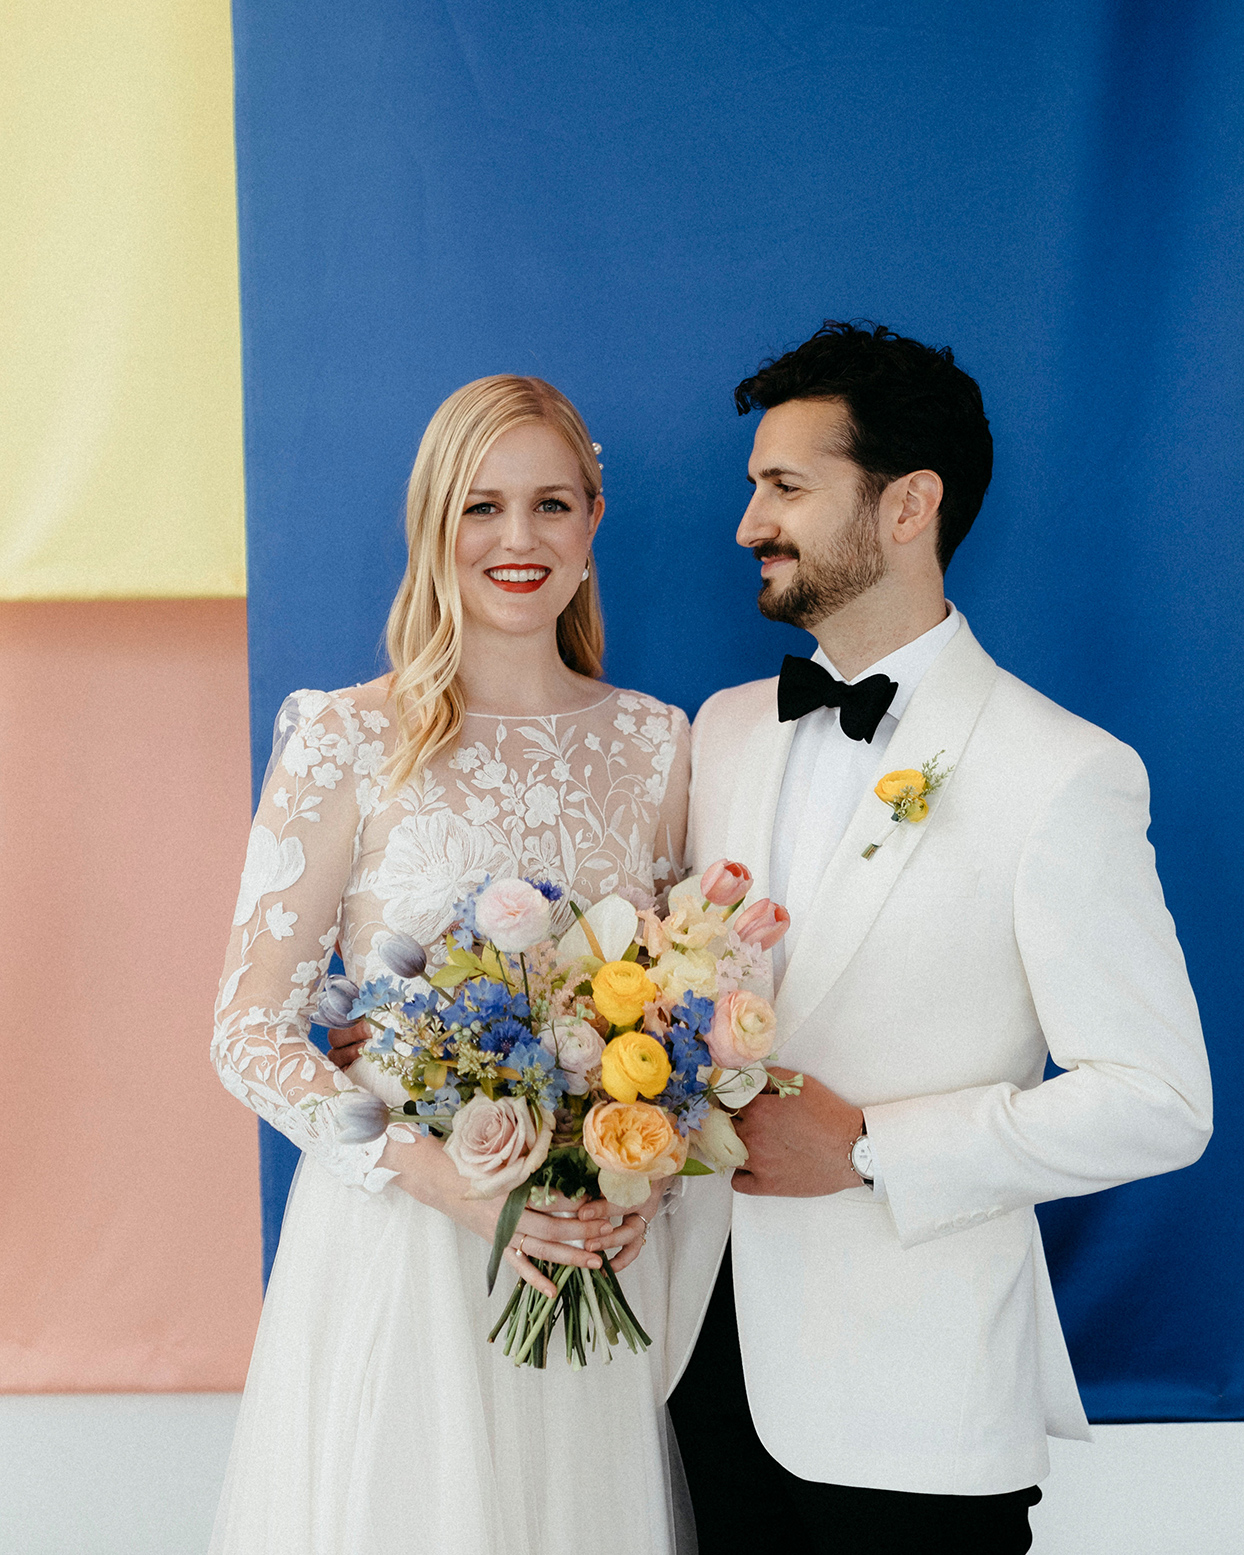 kristen jonathan wedding portraits in front of colorful installation